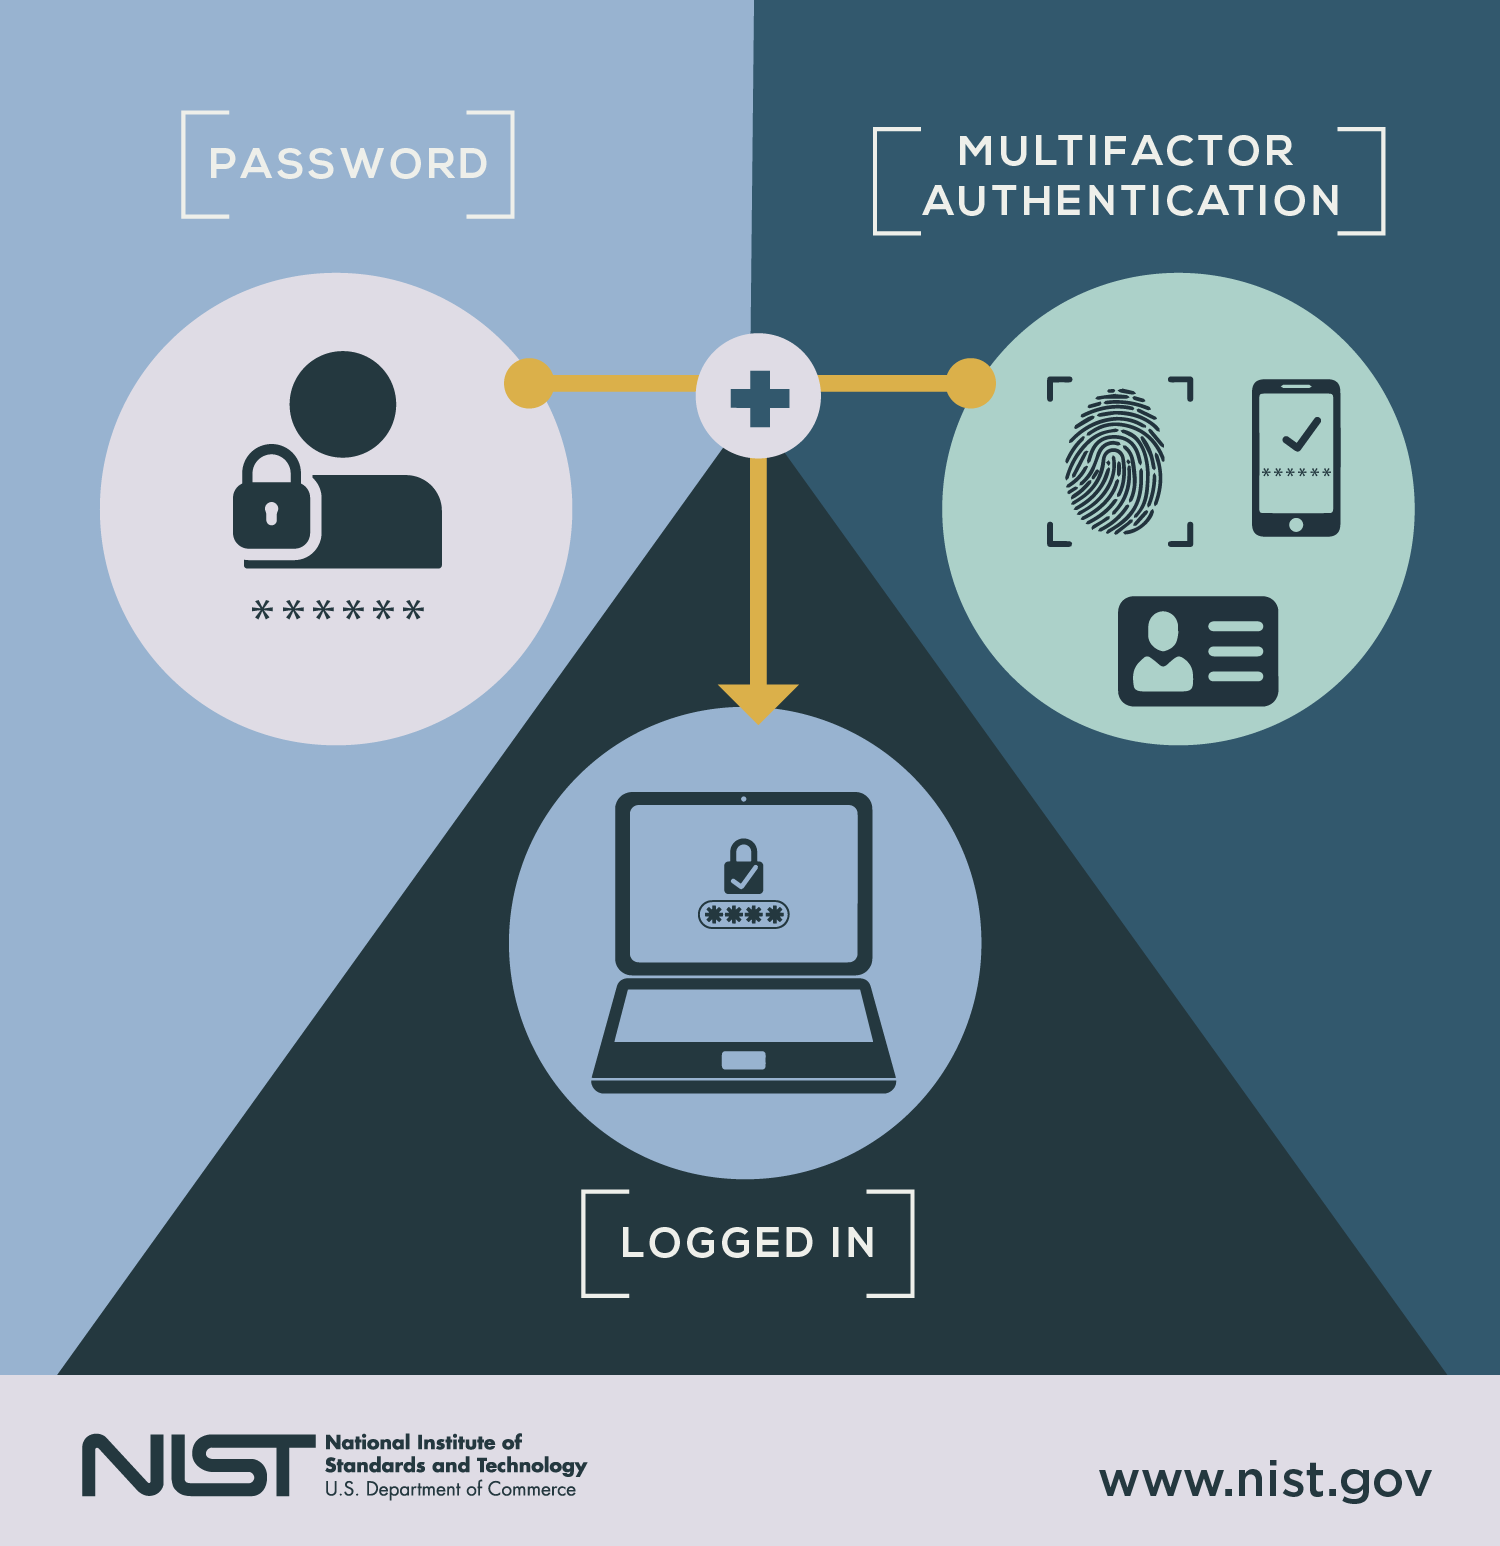 The image shows a password and another factor such as a fingerprint, ID card, or cell phone, coming together to produce a login.